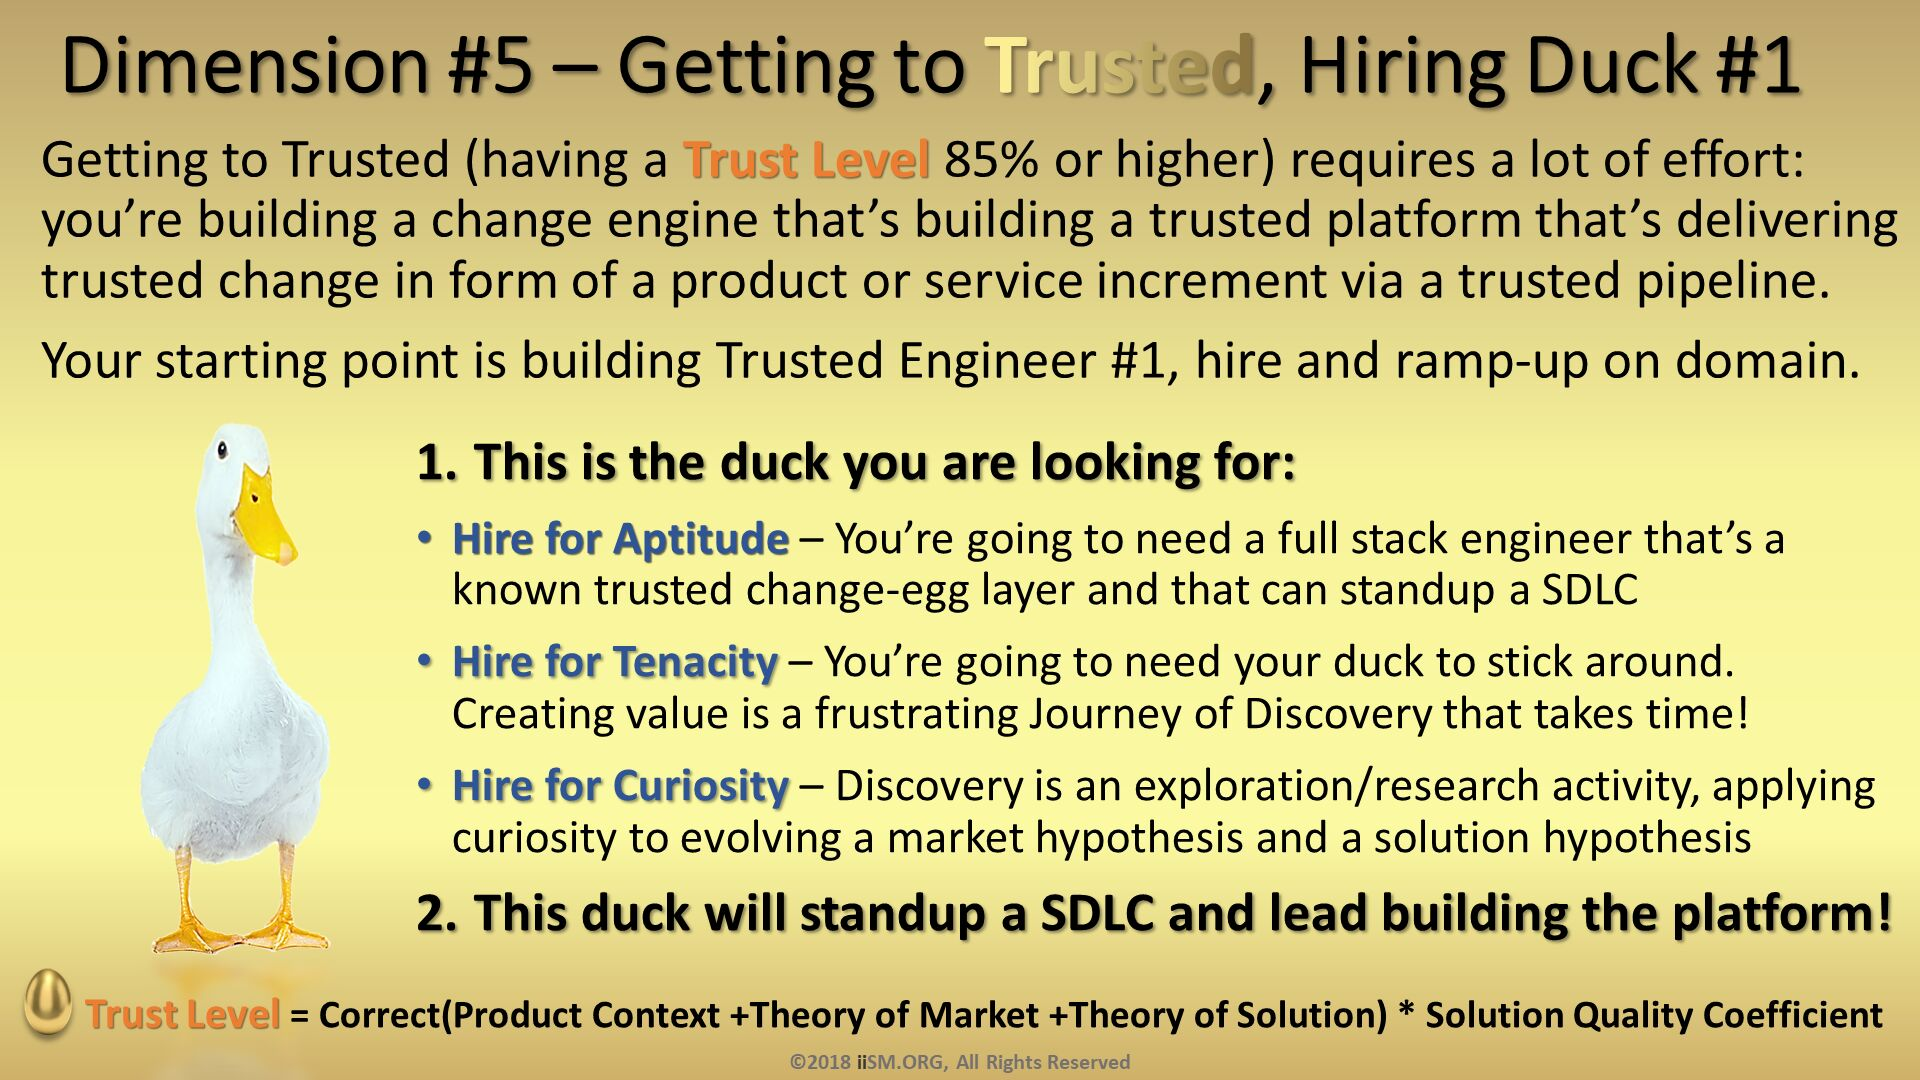 Dimension #5 – Getting to Trusted, Hiring Duck #1. Getting to Trusted (having a Trust Level 85% or higher) requires a lot of effort: you're building a change engine that's building a trusted platform that's delivering trusted change in form of a product or service increment via a trusted pipeline.   Your starting point is building Trusted Engineer #1, hire and ramp-up on domain. . This is the duck you are looking for: Hire for Aptitude – You're going to need a full stack engineer that's a known trusted change-egg layer and that can standup a SDLC Hire for Tenacity – You're going to need your duck to stick around.  Creating value is a frustrating Journey of Discovery that takes time! Hire for Curiosity – Discovery is an exploration/research activity, applying curiosity to evolving a market hypothesis and a solution hypothesis This duck will standup a SDLC and lead building the platform!. Trust Level = Correct(Product Context +Theory of Market +Theory of Solution) * Solution Quality Coefficient . ©2018 iiSM.ORG, All Rights Reserved.